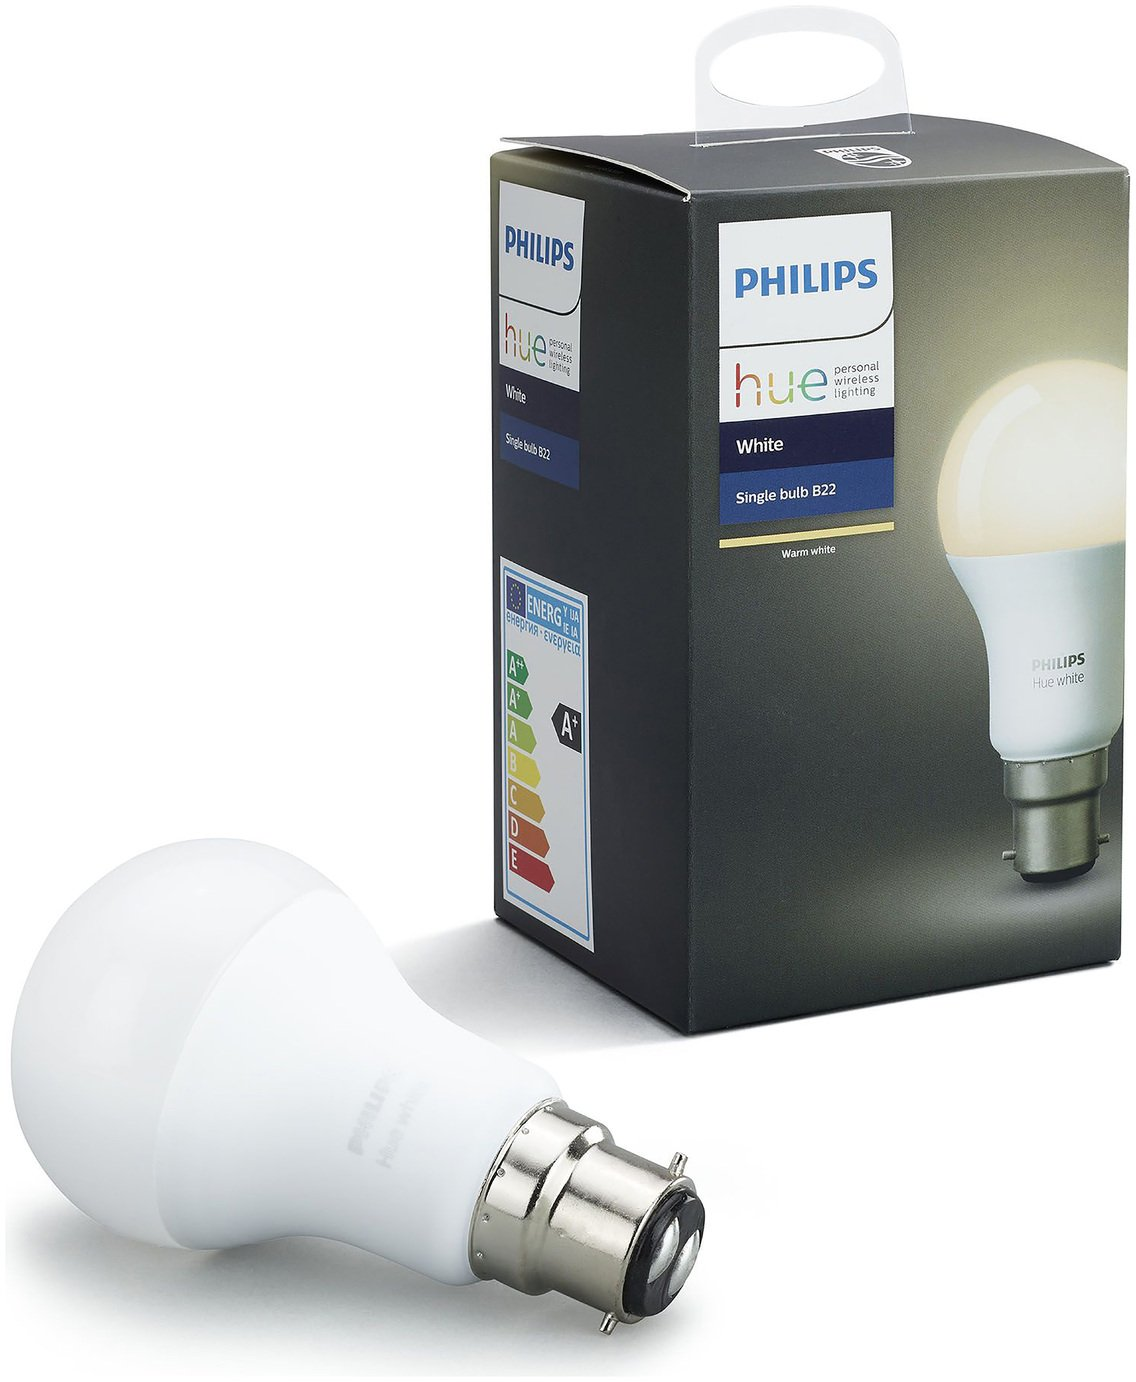 Led White Buy Philips Hue 9 5w Led White Wireless B22 Light Bulb Smart